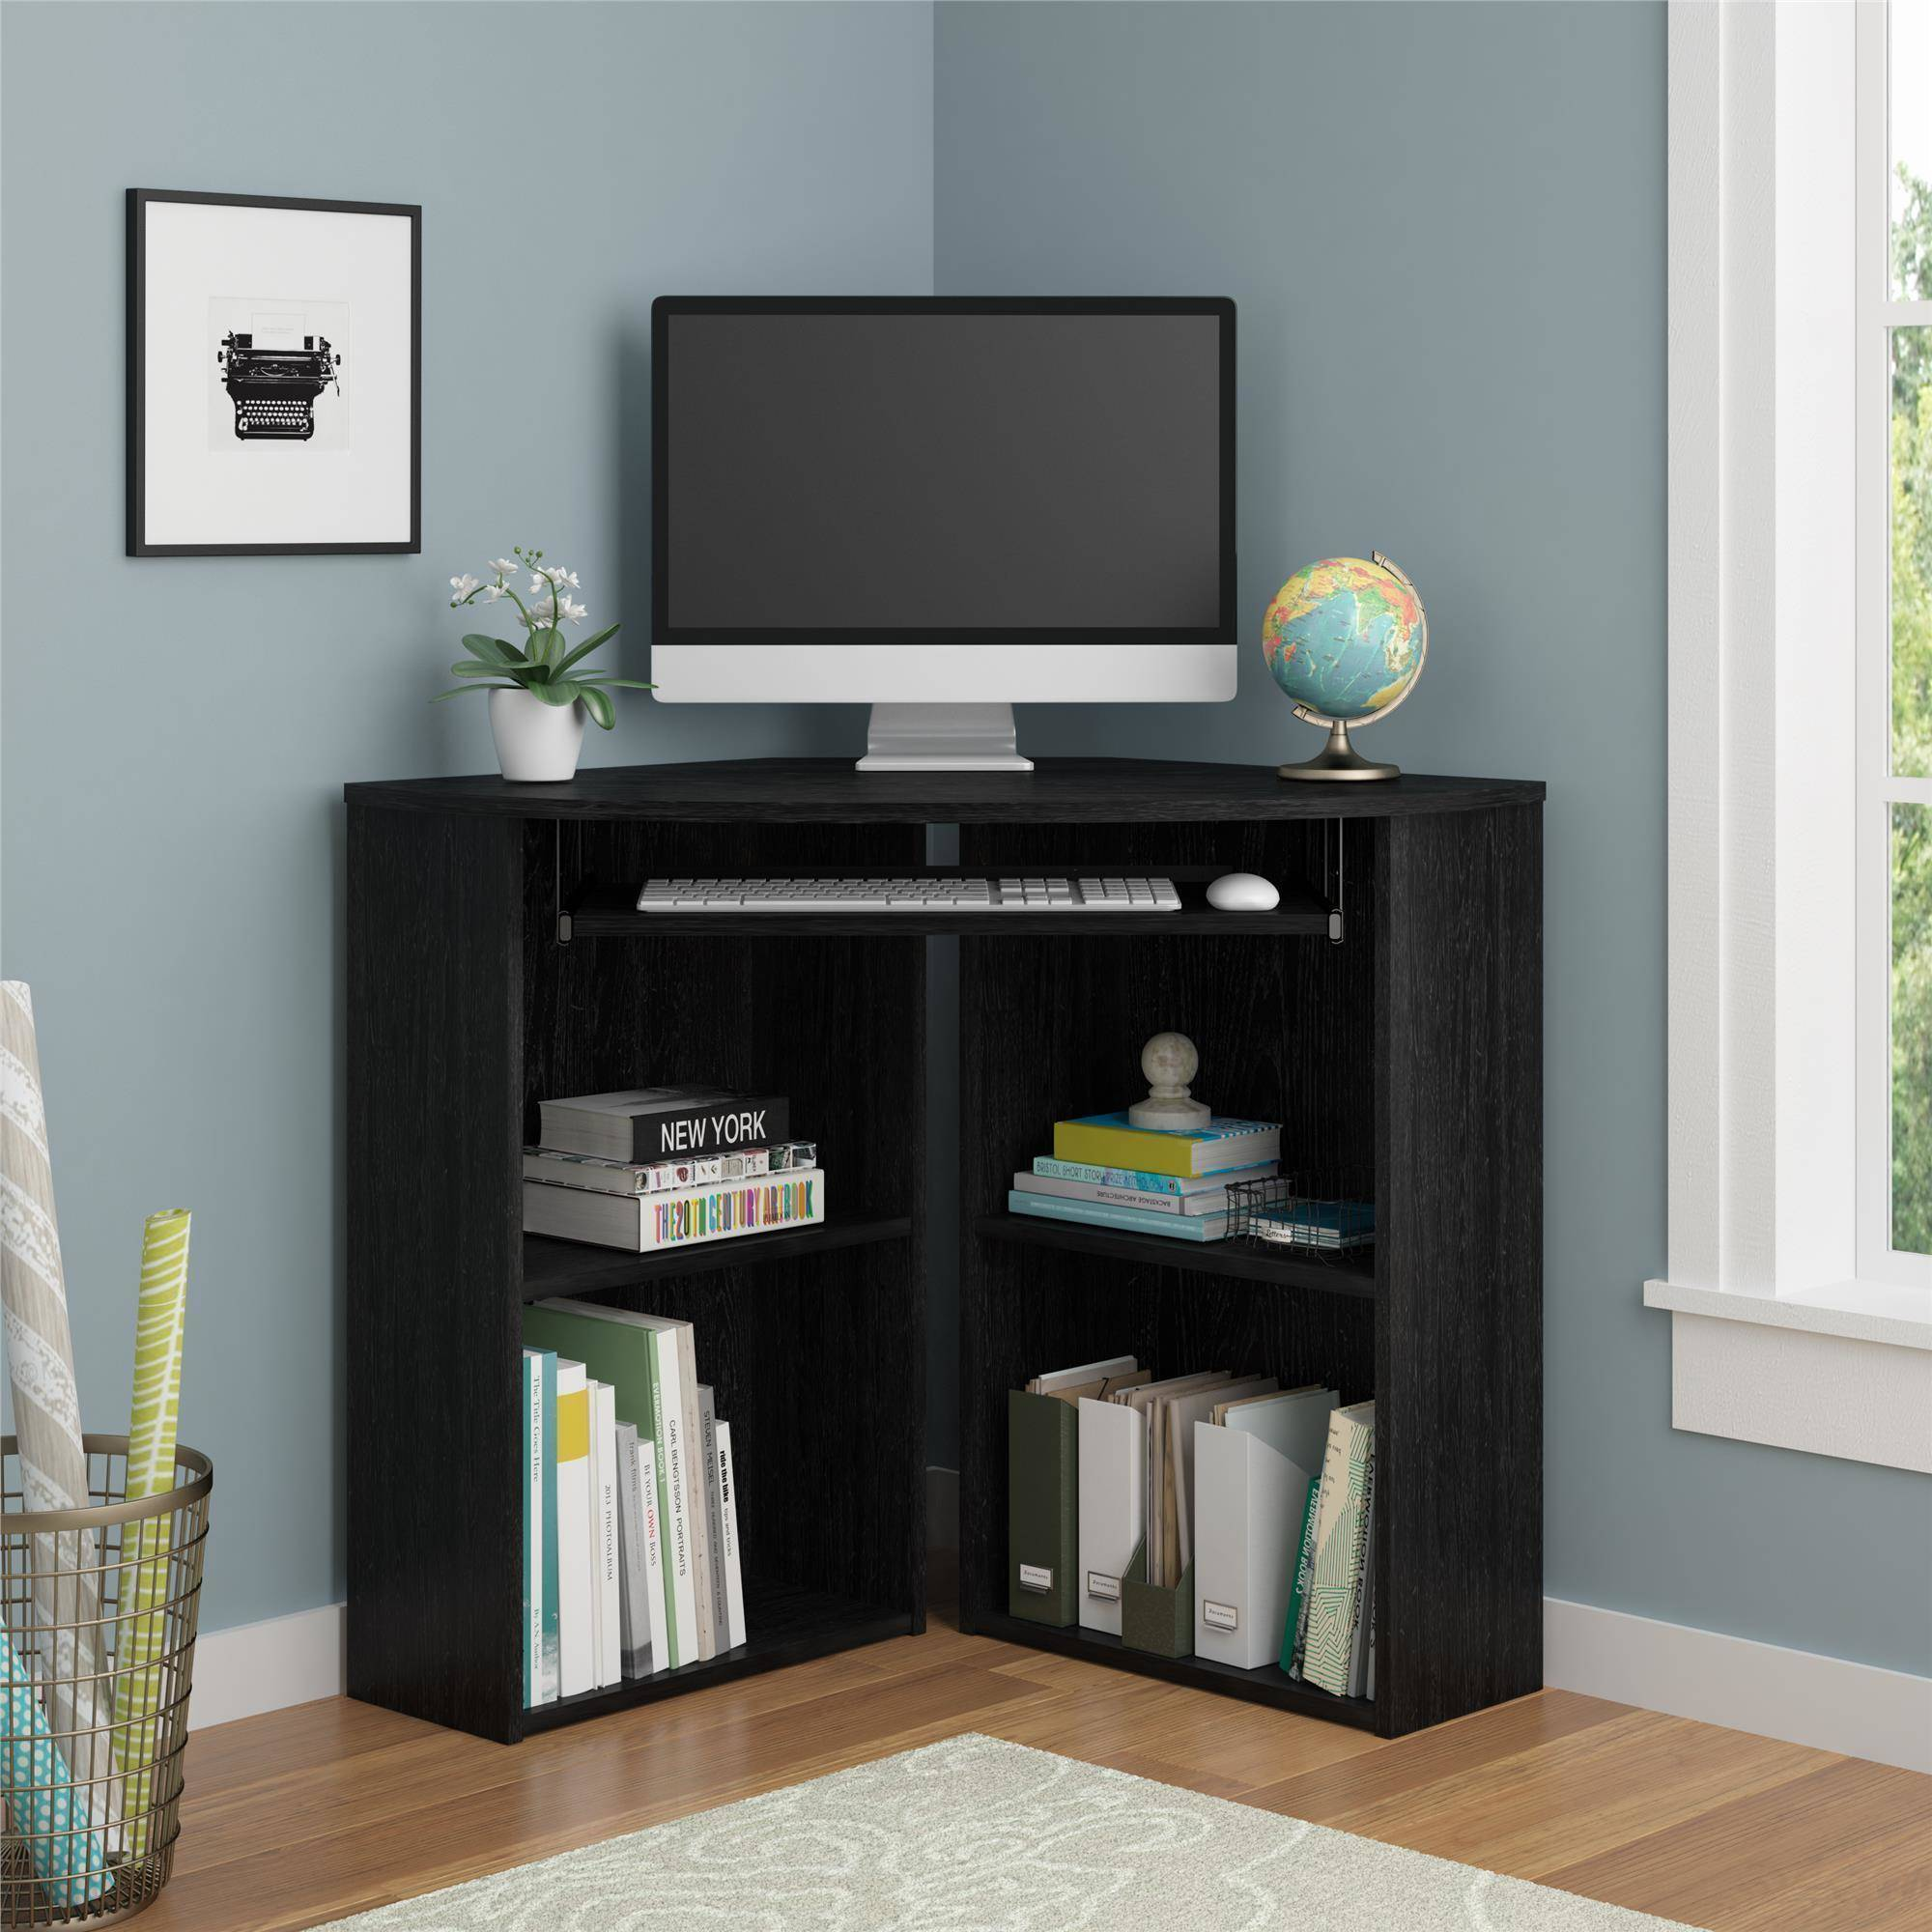 Mainstays Corner Desk, Black